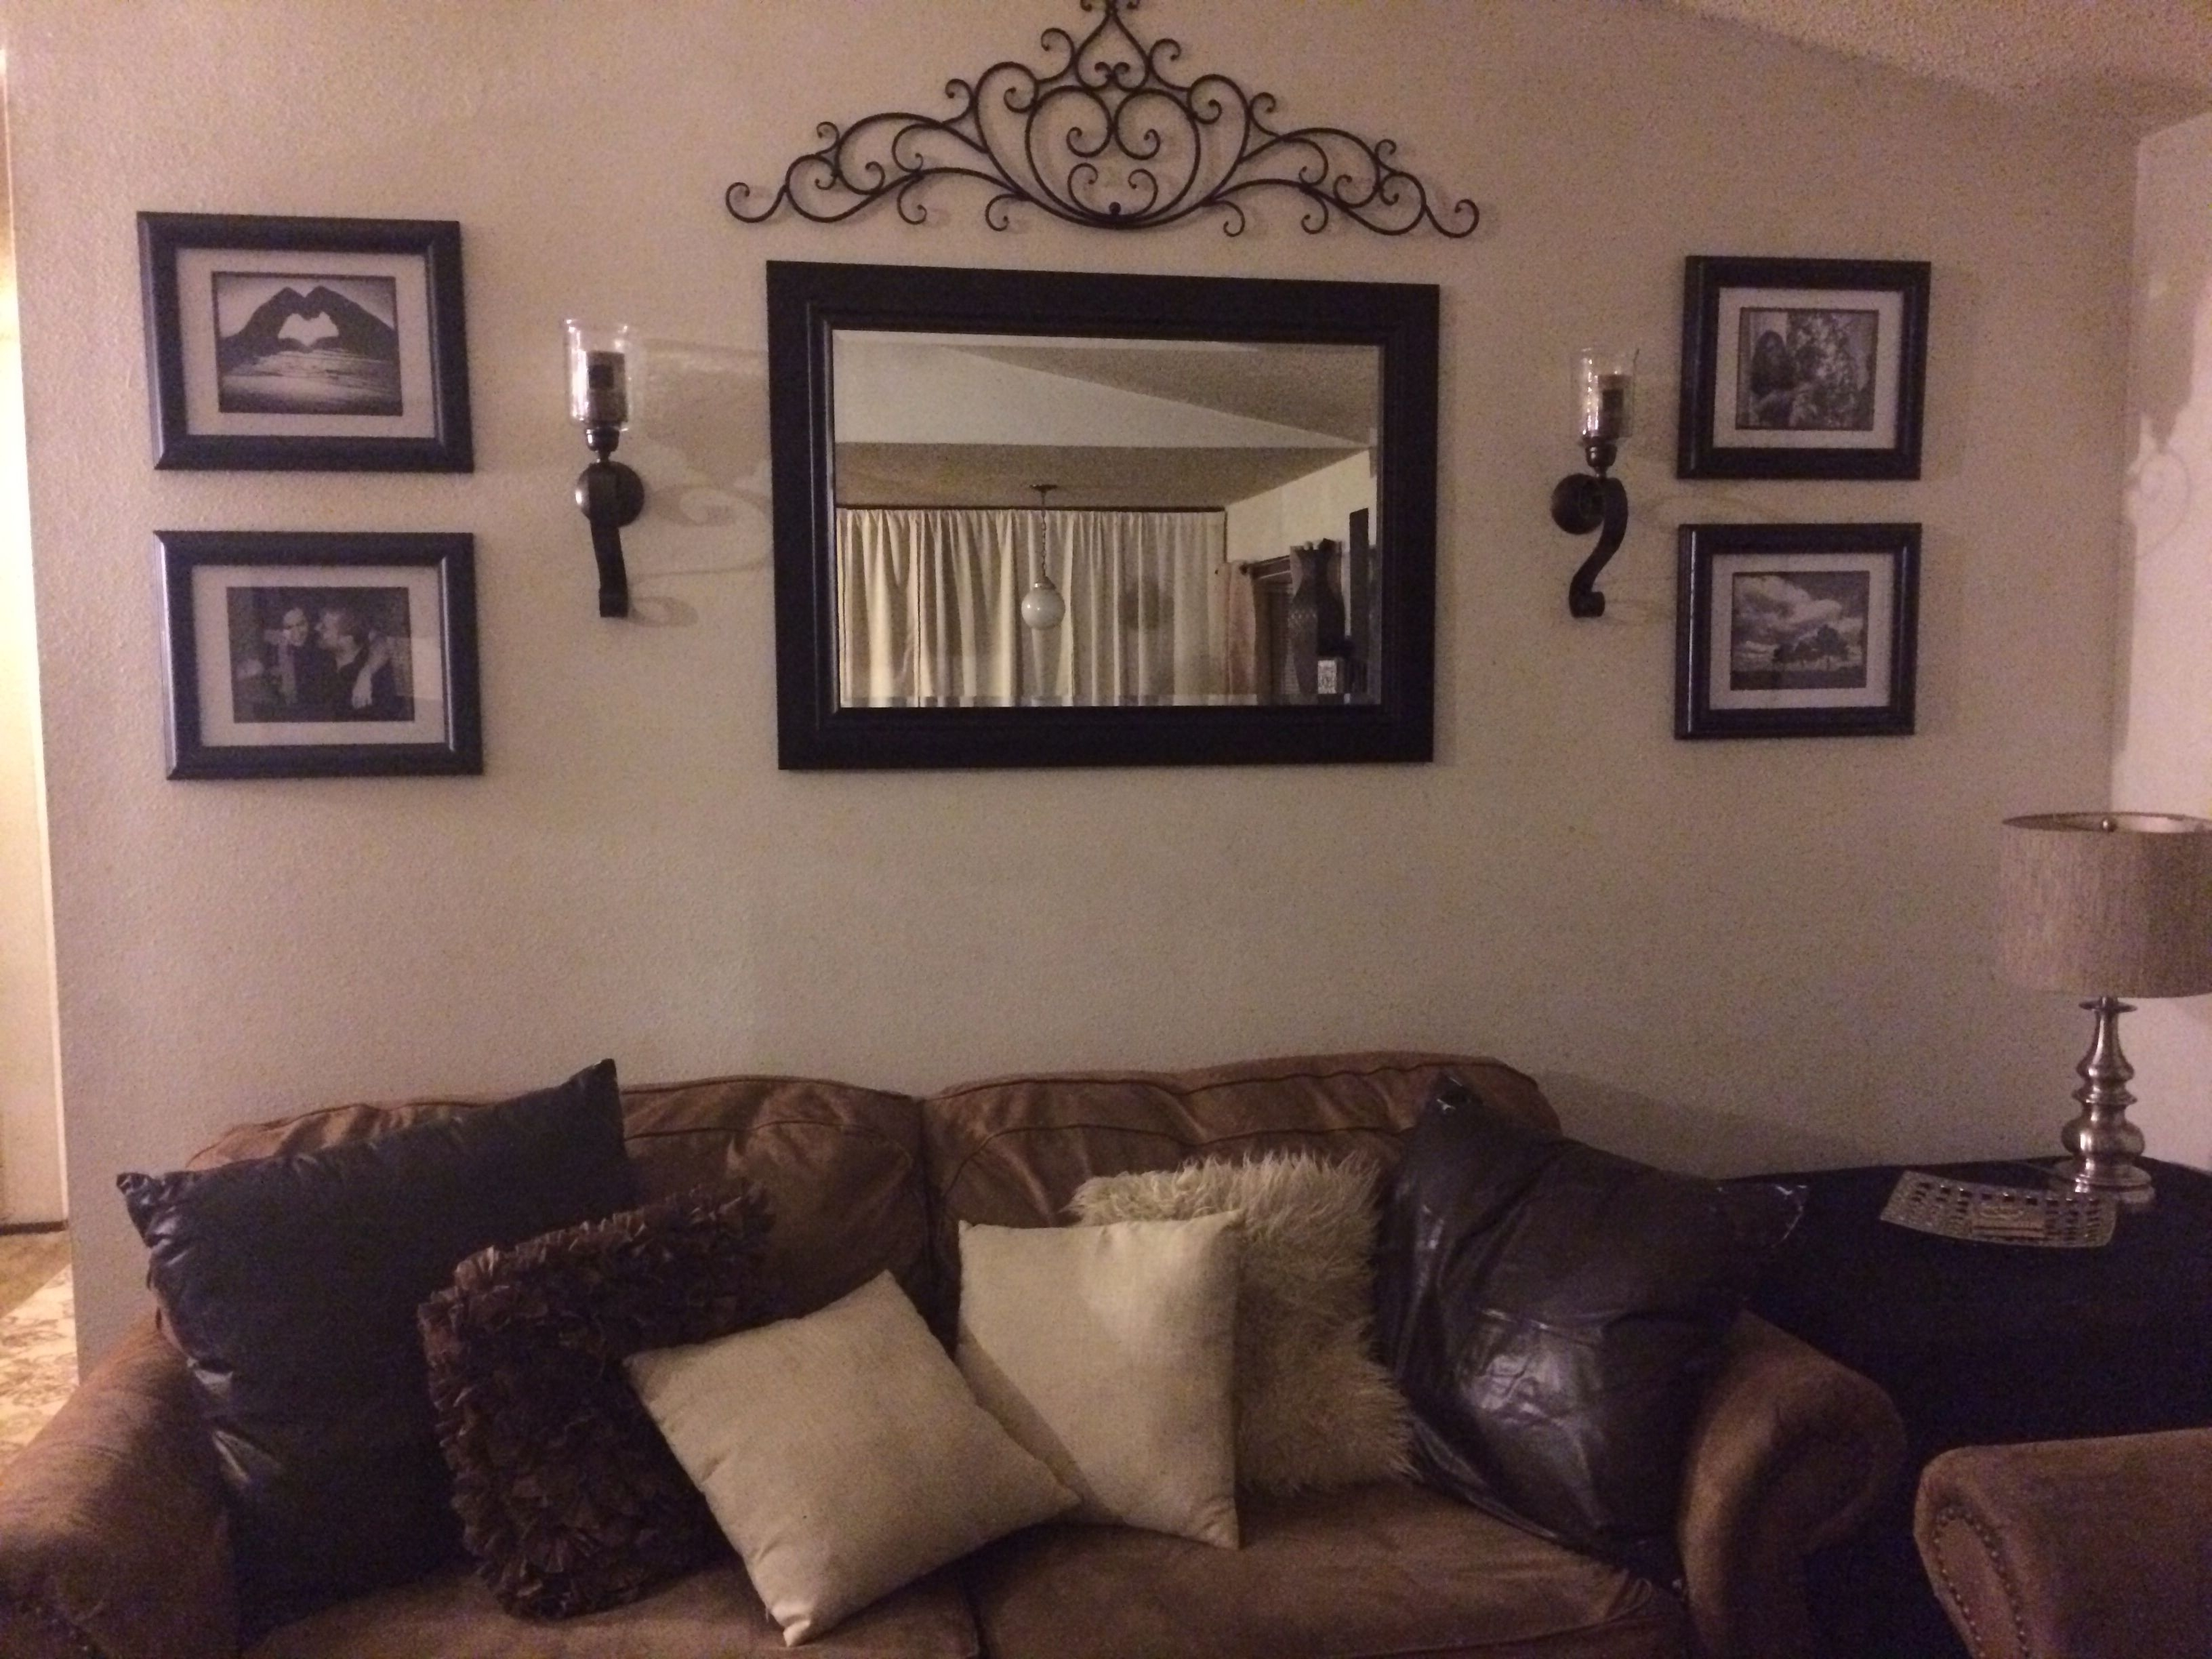 Trendy Wall Accents Behind Tv Intended For Behind Couch Wall In Living Room Mirror, Frame, Sconces, And Metal (View 11 of 15)